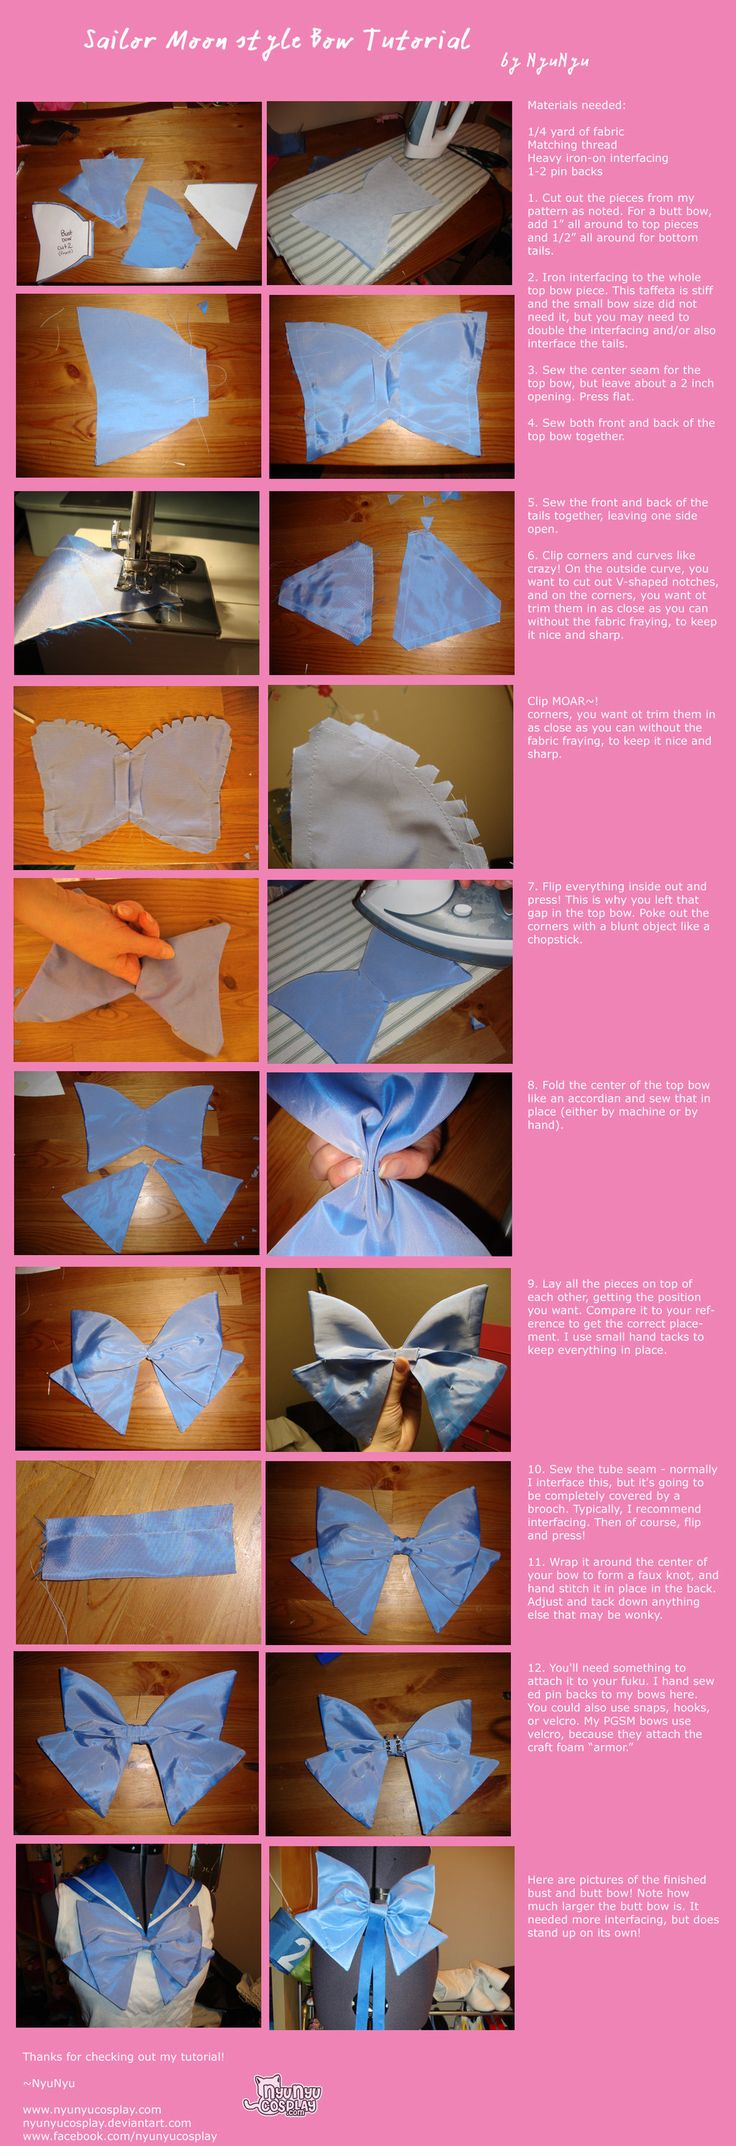 Sailor Moon style bow tutorial by nyunyucosplay.deviantart.com on @deviantART